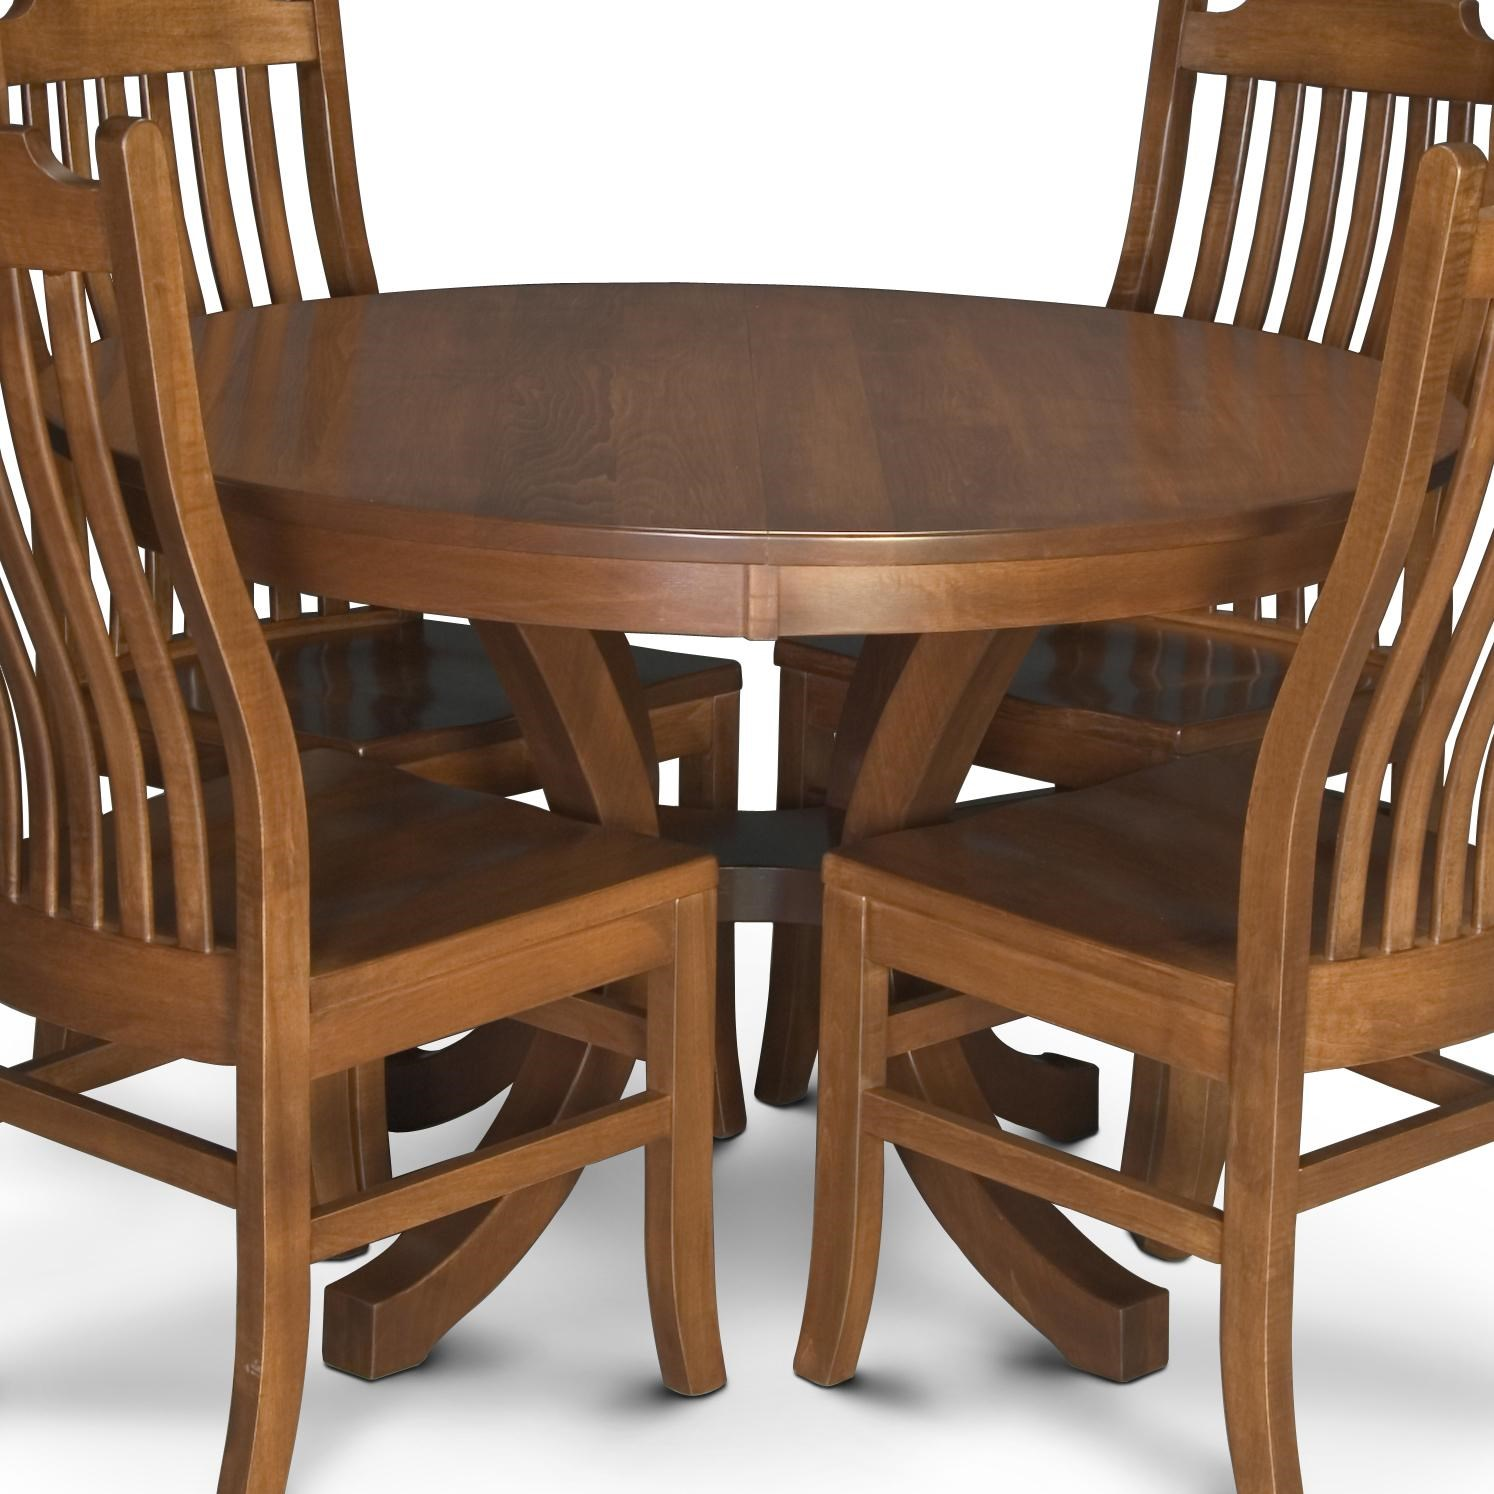 furniture kitchen tables simply amish loft round table  this piece may be shown differently in our showroom than as pictured on website  simply amish loft nbl4848 2 round pedestal table with 2 leaves      rh   beckerfurnitureworld com